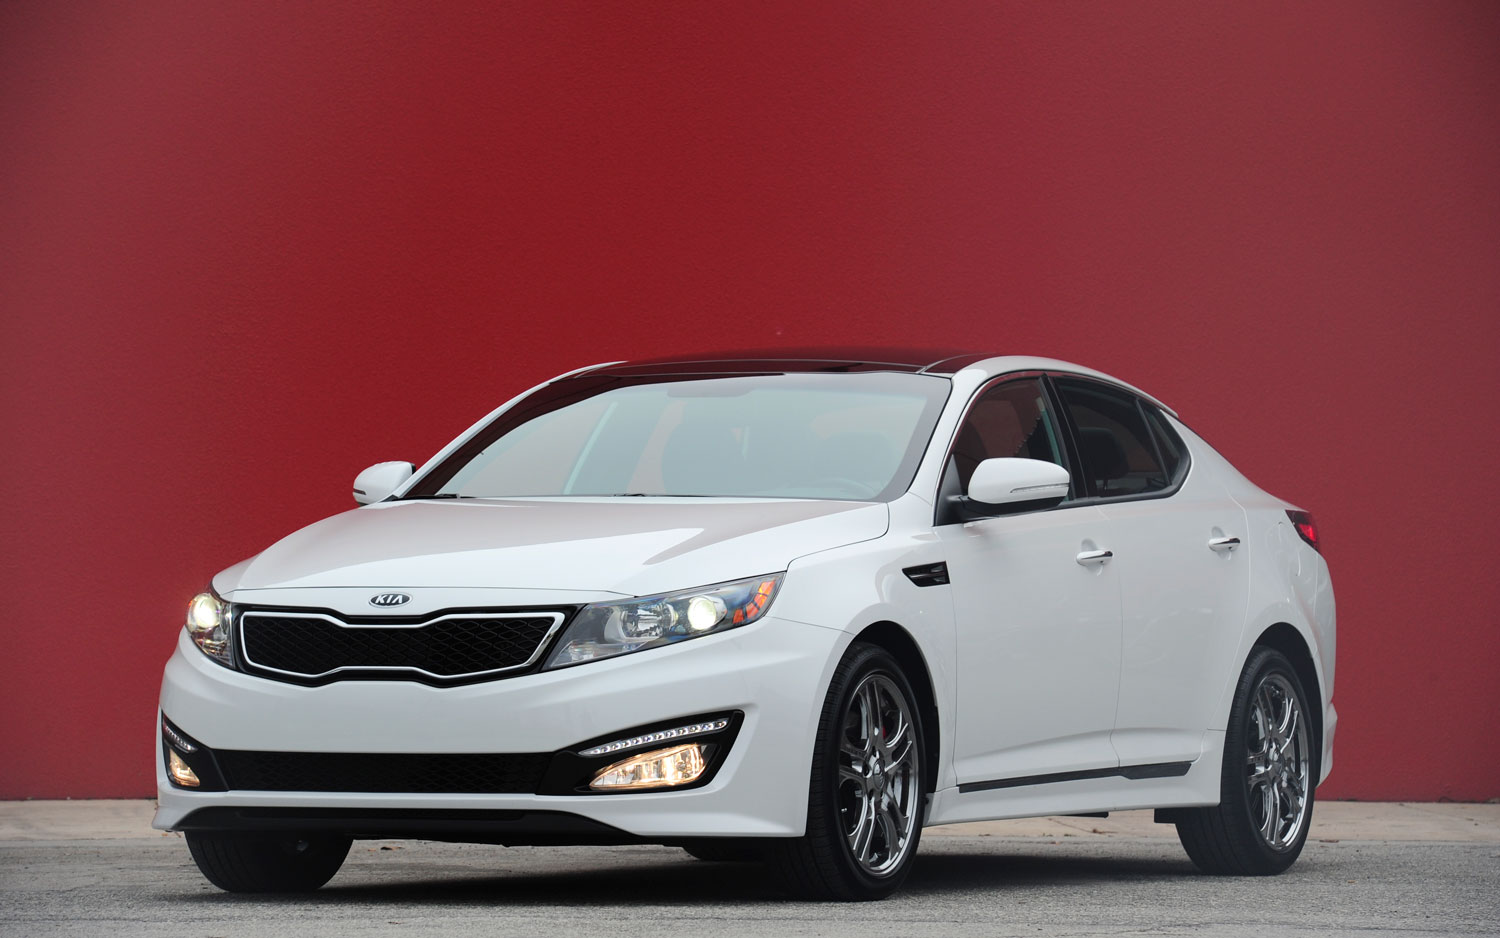 2013 Kia Optima Limited Priced at $35,275, On Sale Now